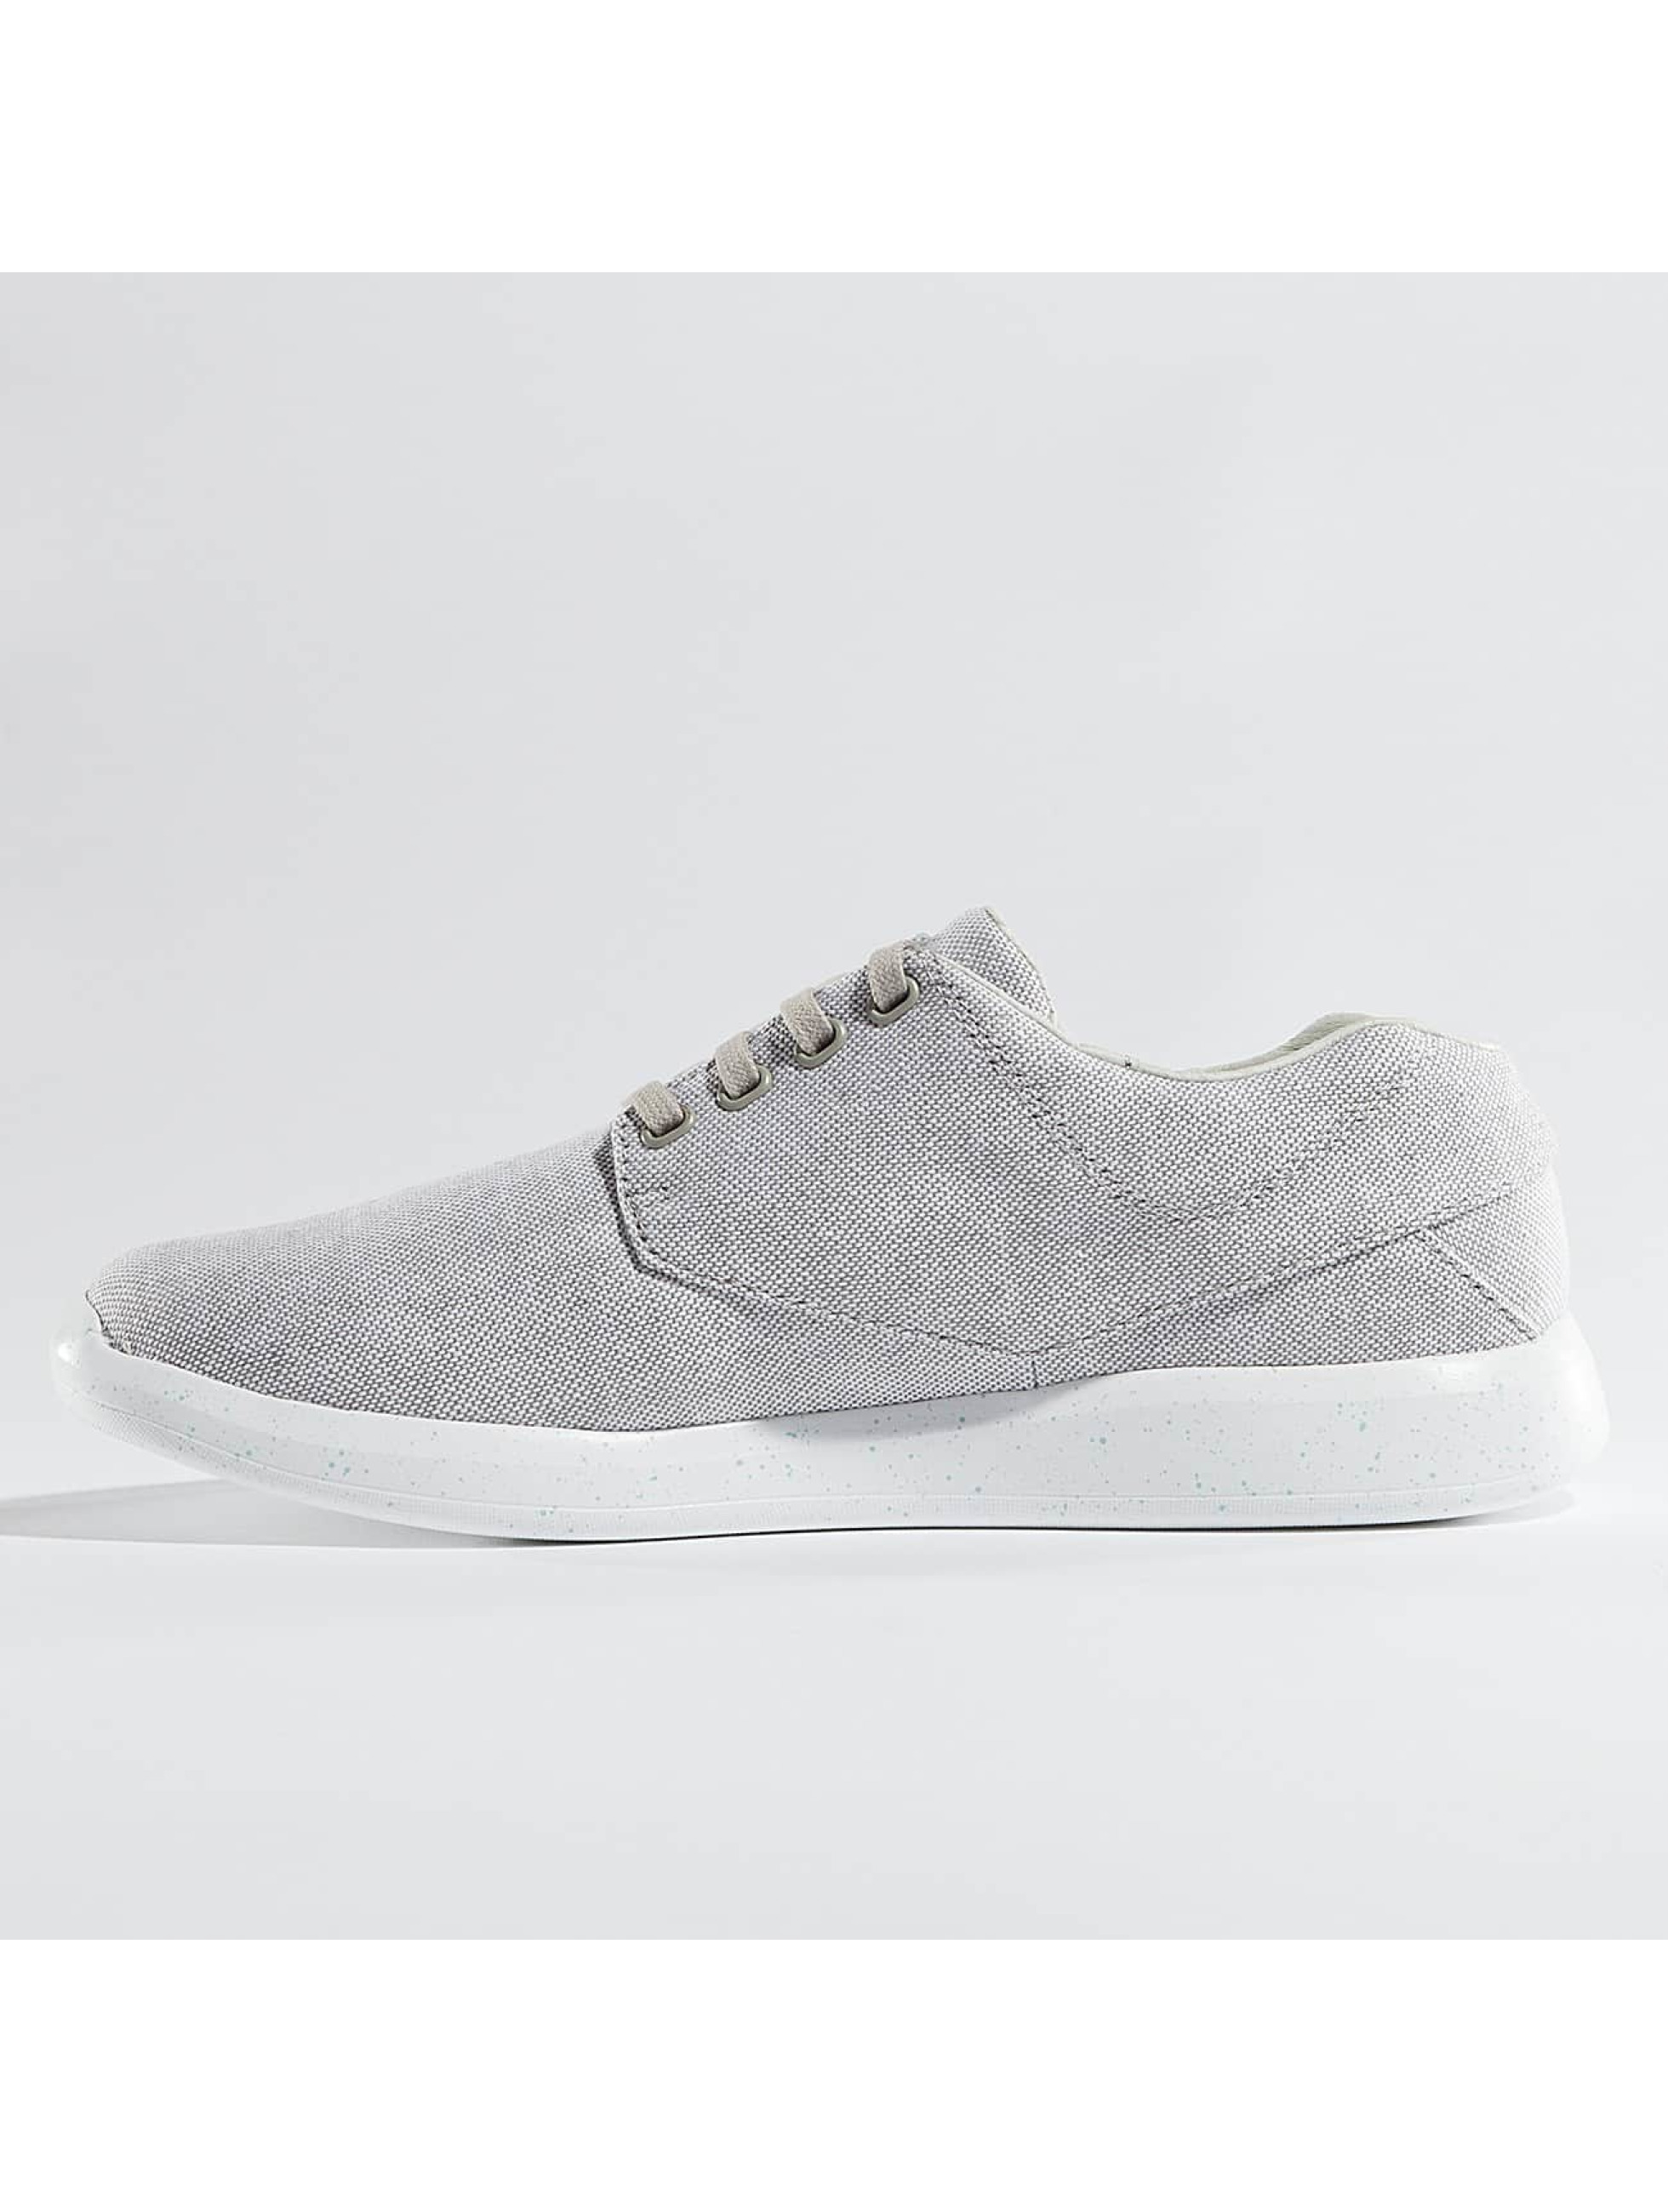 K1X Sneaker Dress Up Light Weight grigio